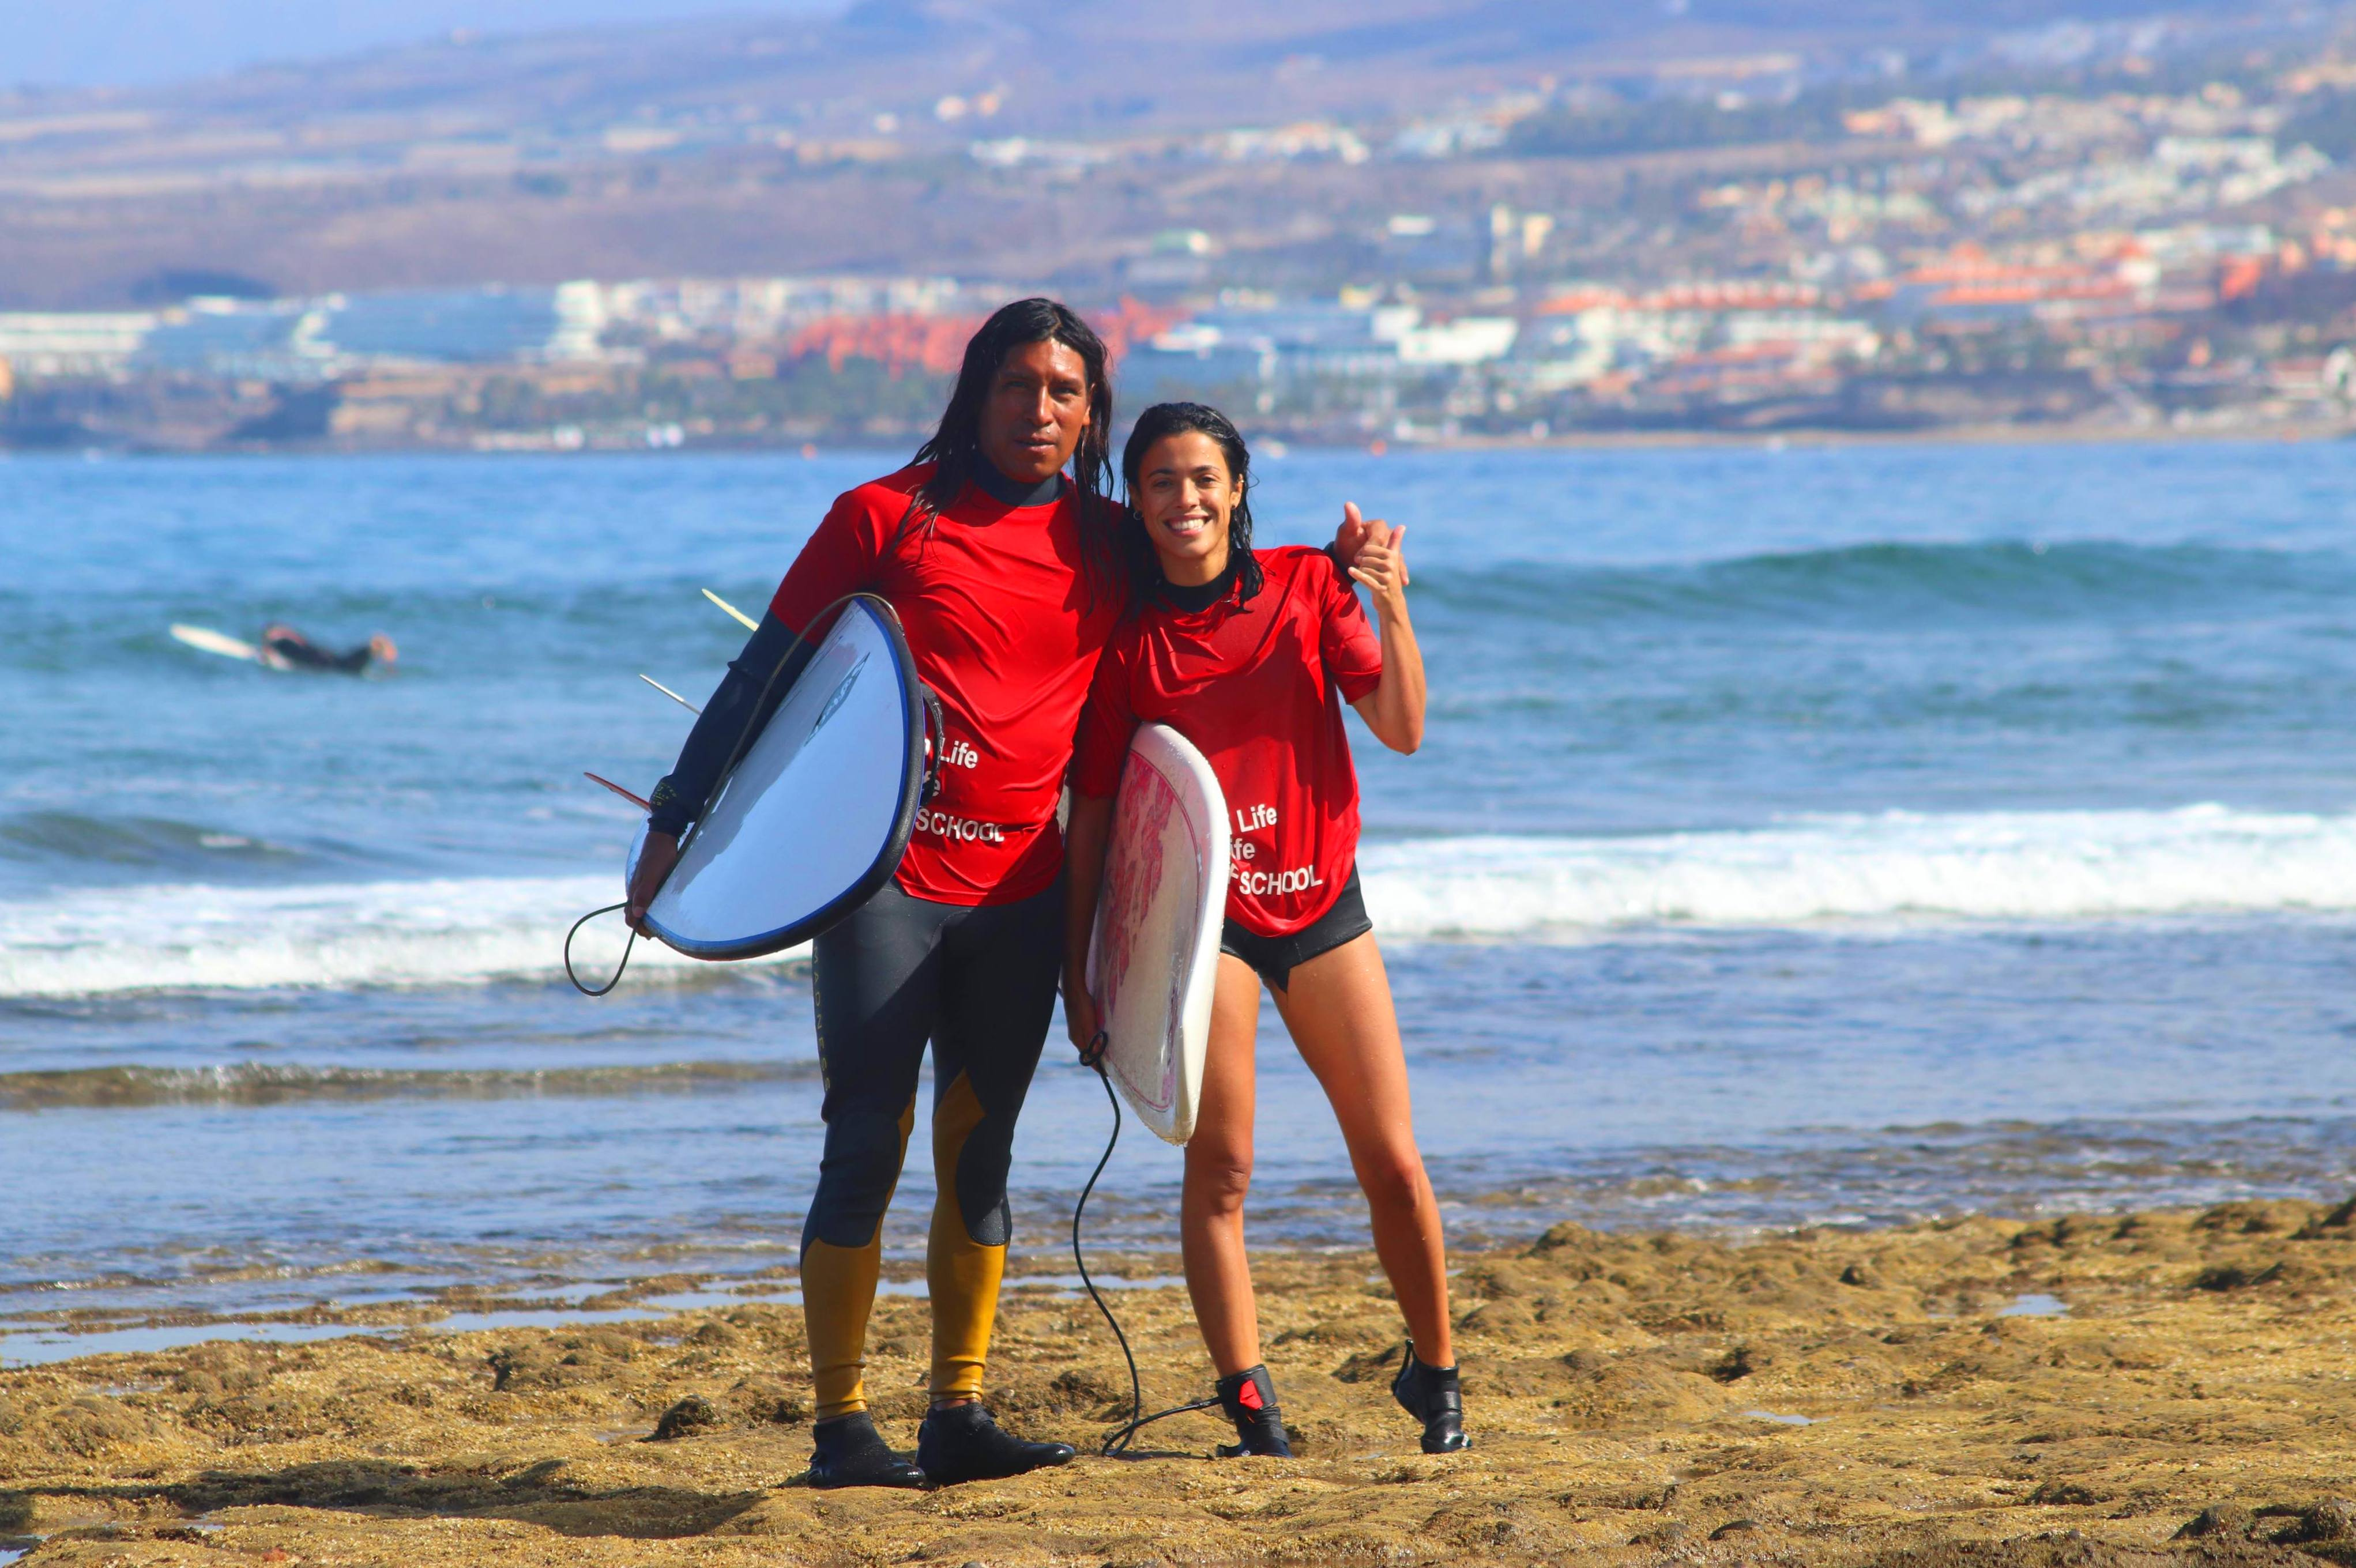 our student Maria happy after a good day of surfing!